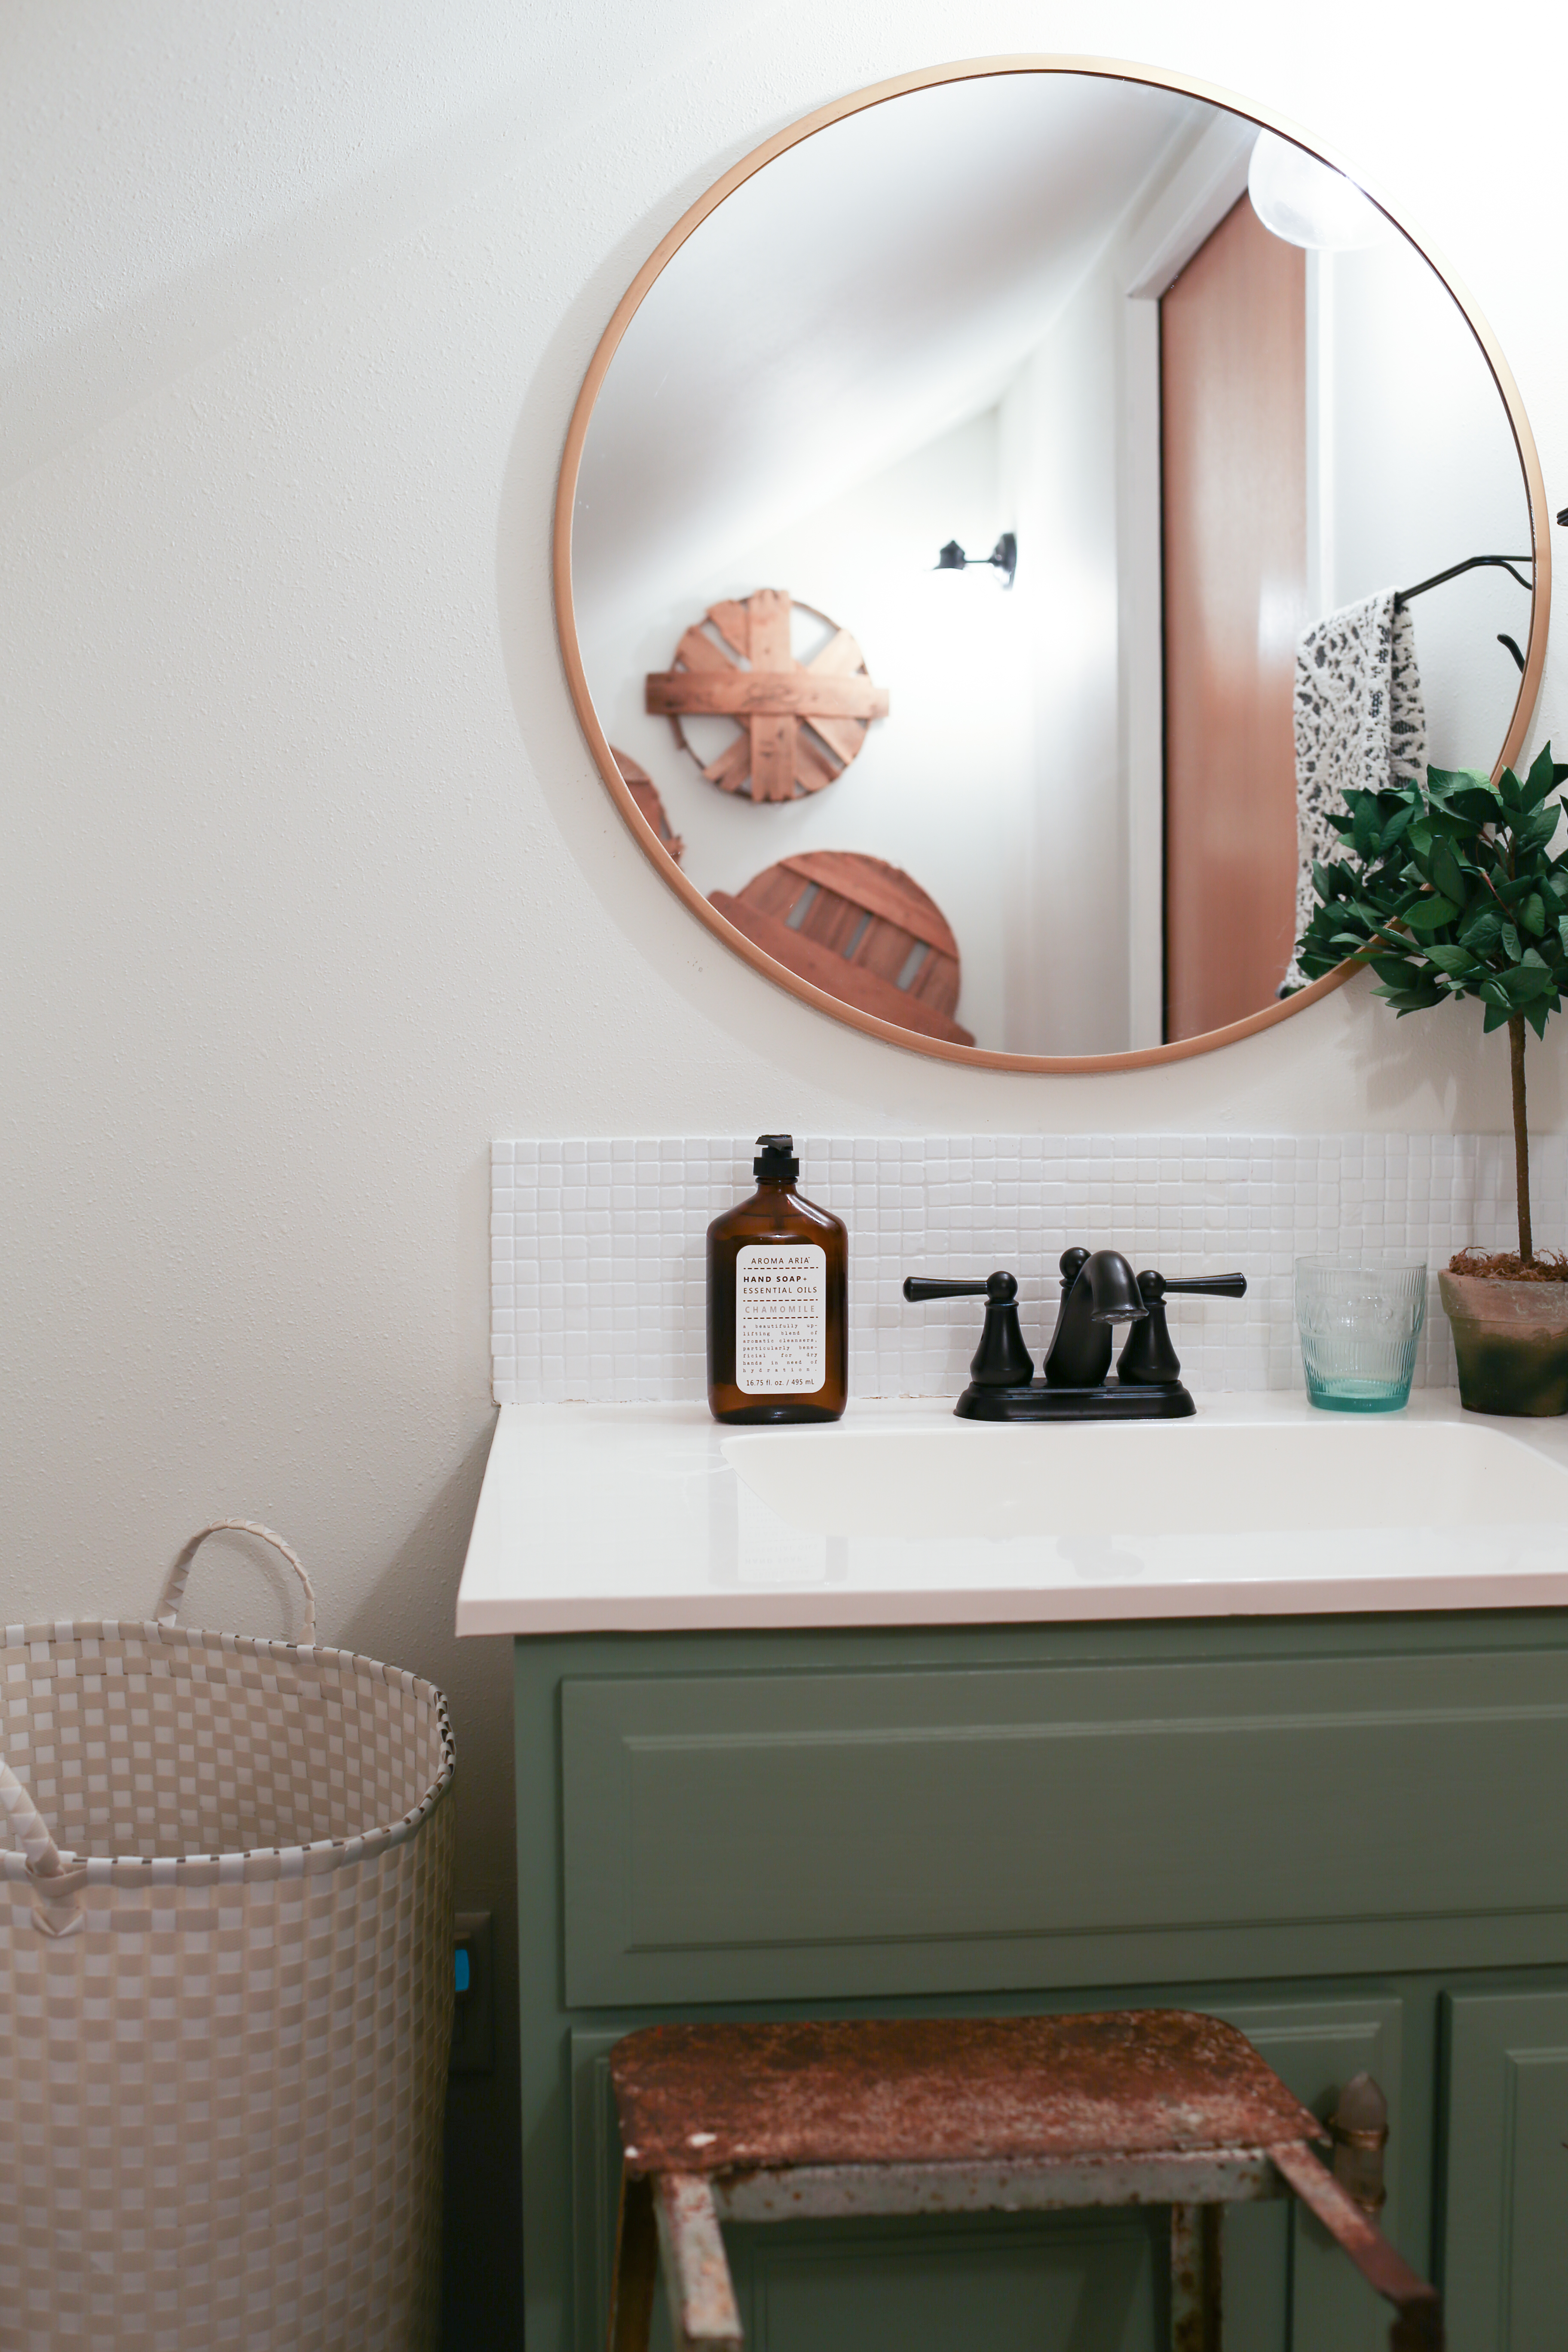 Modern Farmhouse Bathroom With Green Cabinetry And Gold Black Accents From Homestead 128